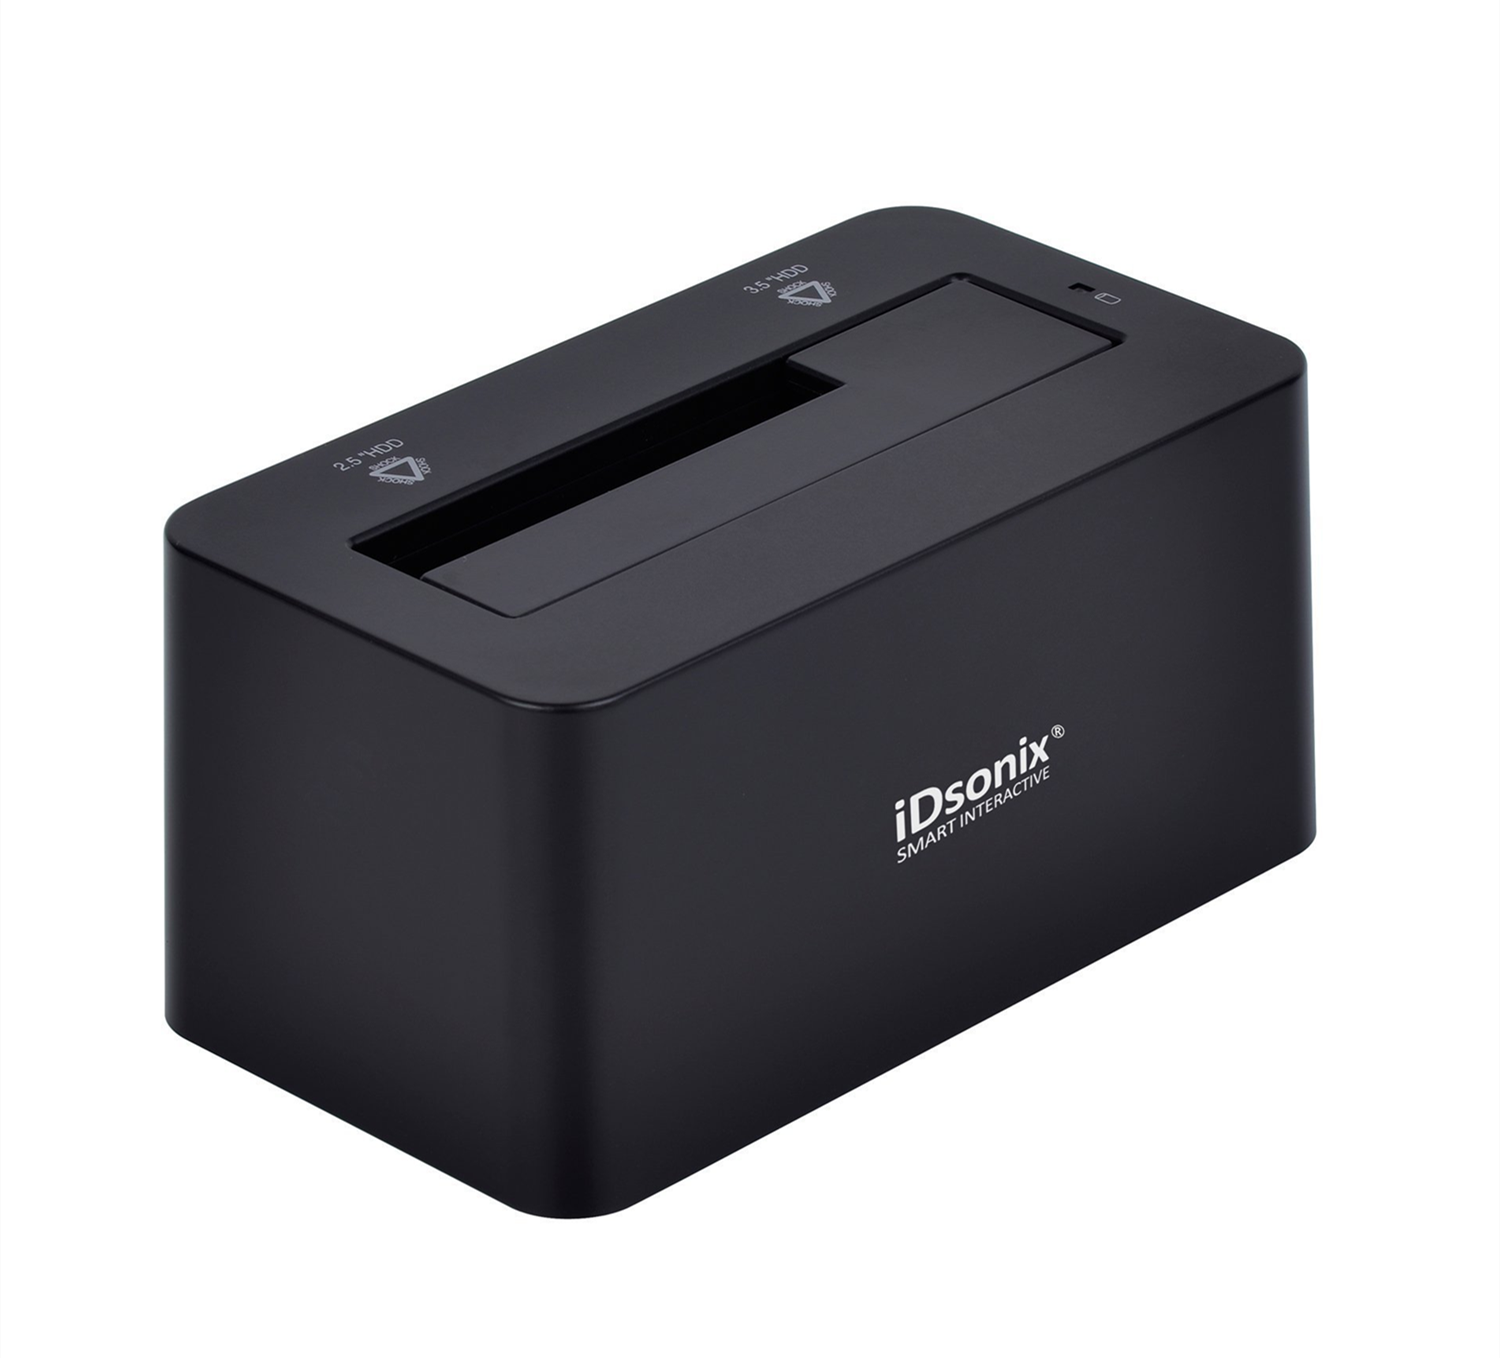 iDsonix Tool Free USB 3.0/2.0 to SATA 2.5/3.5 Inch Hard Drive Docking Station with 3.3 Feet USB 3.0 Cable for HDD/SSD Support 8TB and UASP